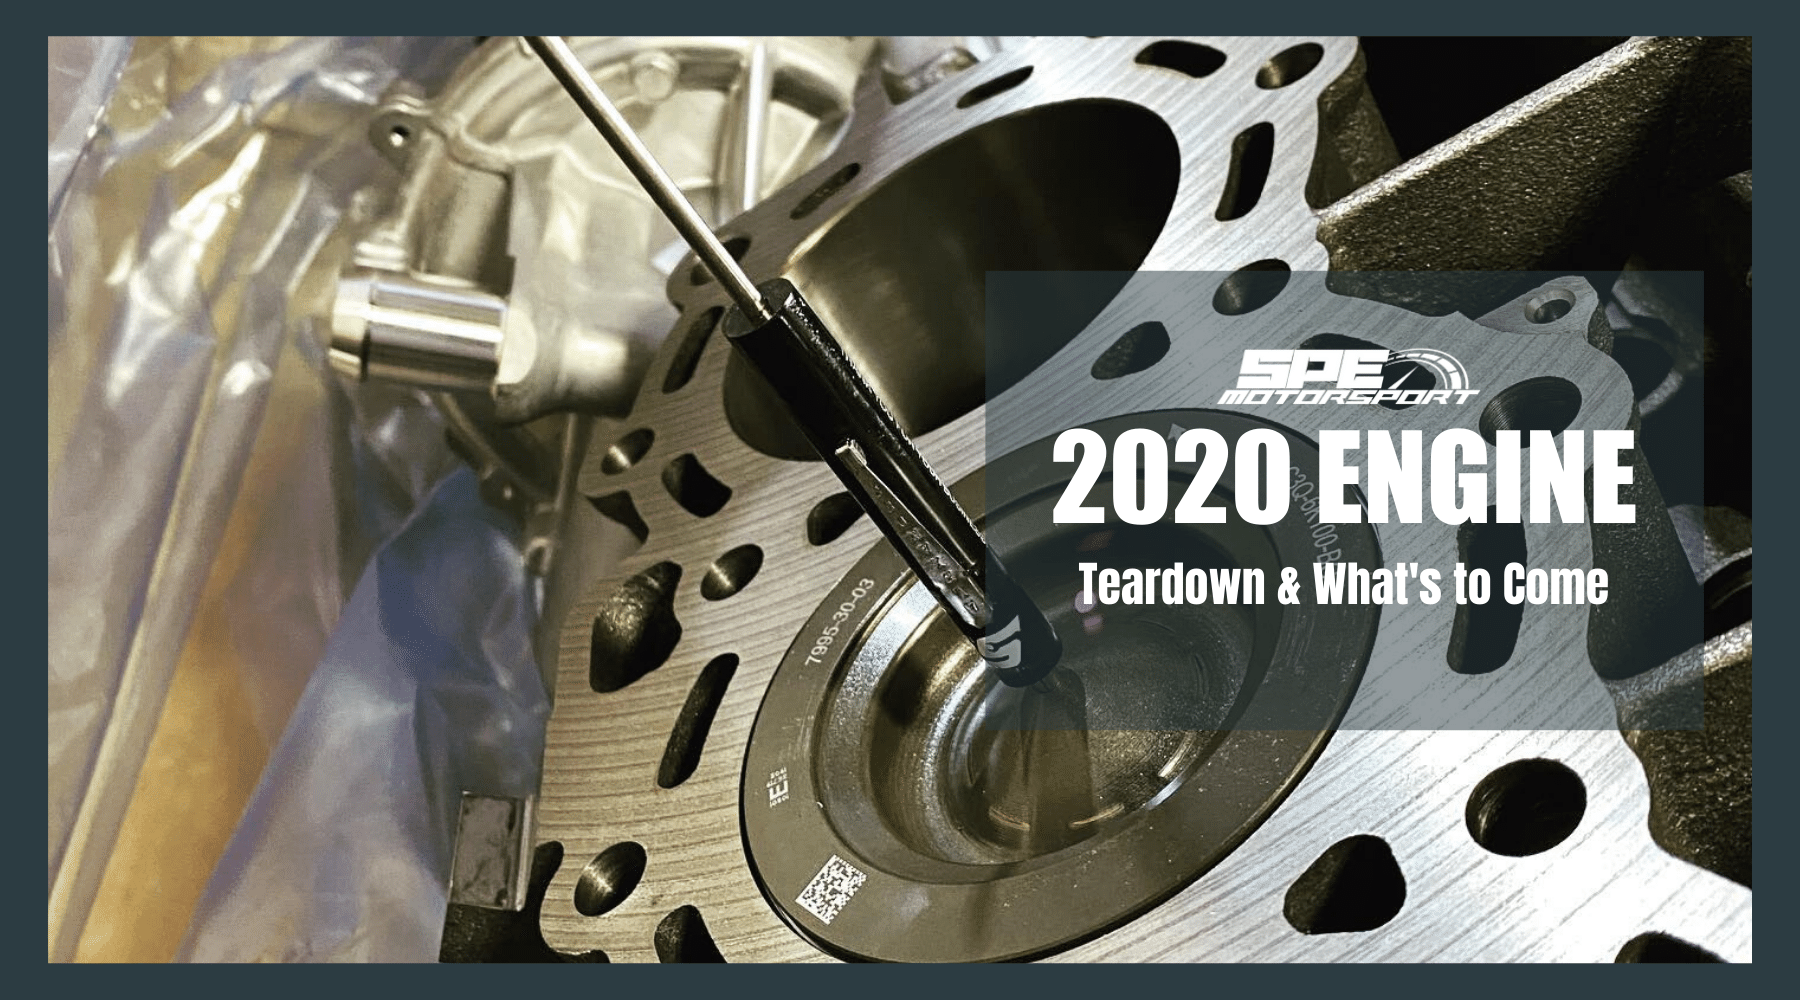 2020 Ford 6.7L, Teardown and What's to Come...